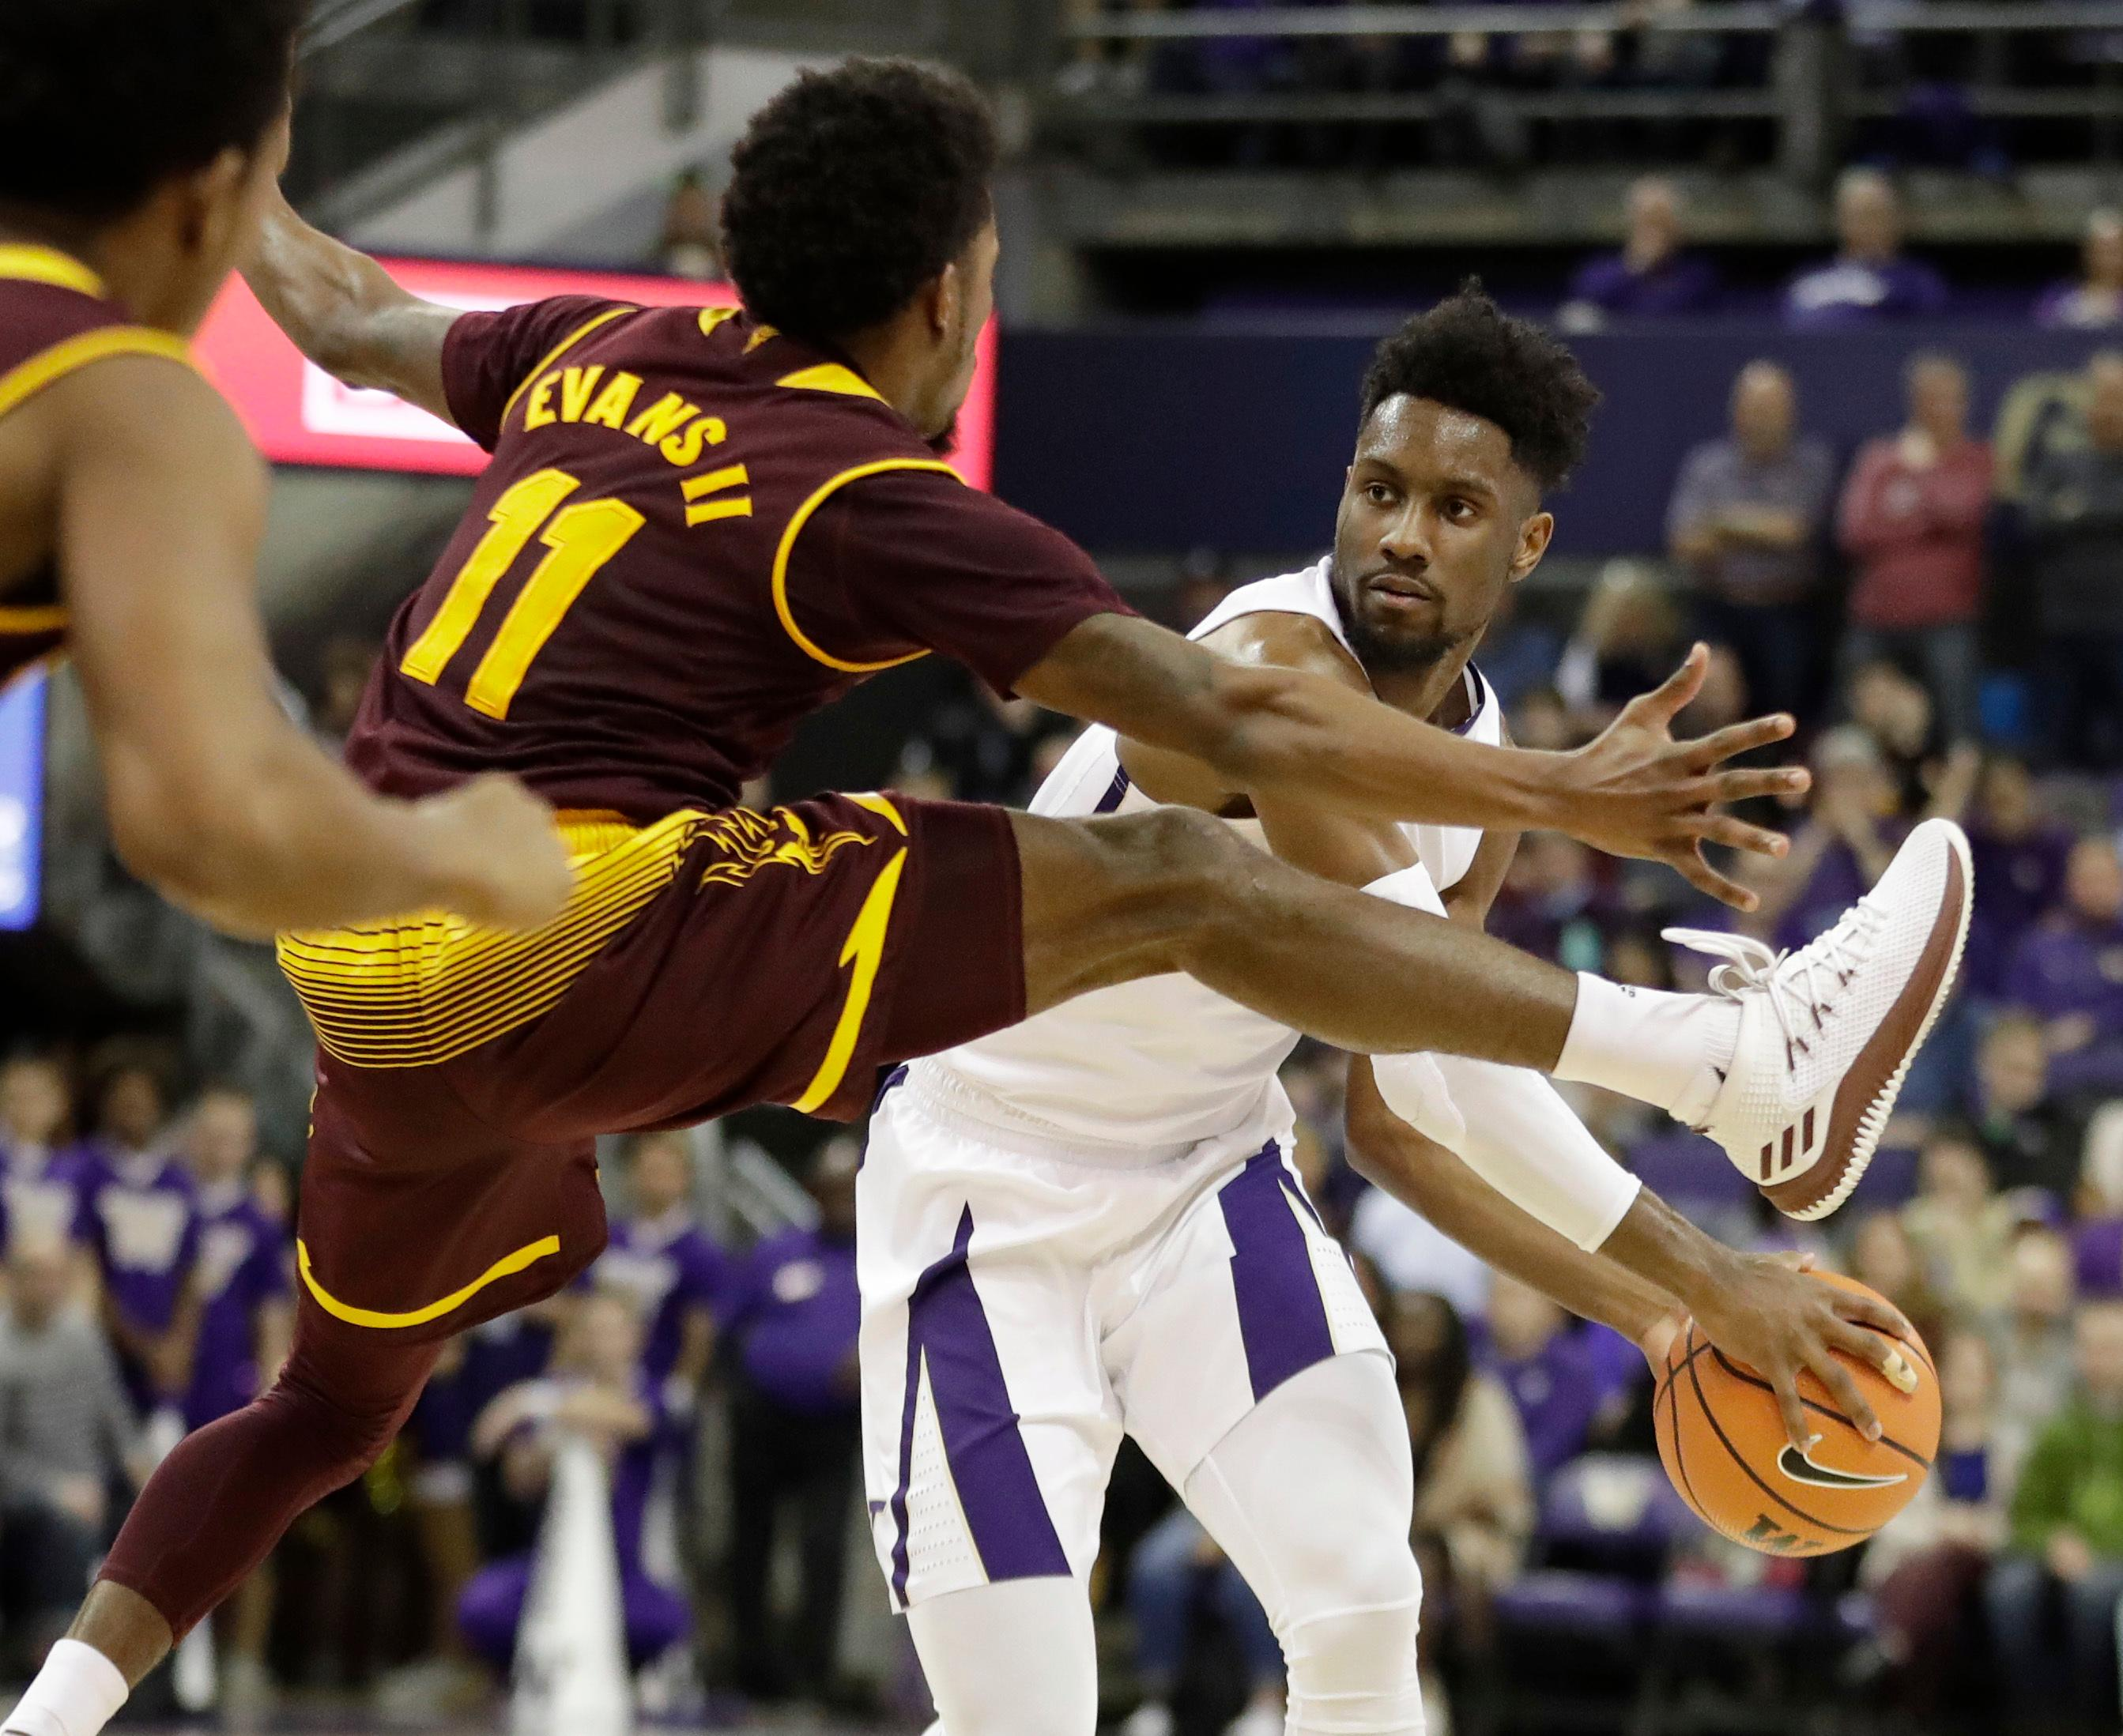 Arizona State guard Shannon Evans II (11) tries to block a pass by Washington guard Jaylen Nowell, right, in the first half of an NCAA college basketball game, Thursday, Feb. 1, 2018, in Seattle. (AP Photo/Ted S. Warren)